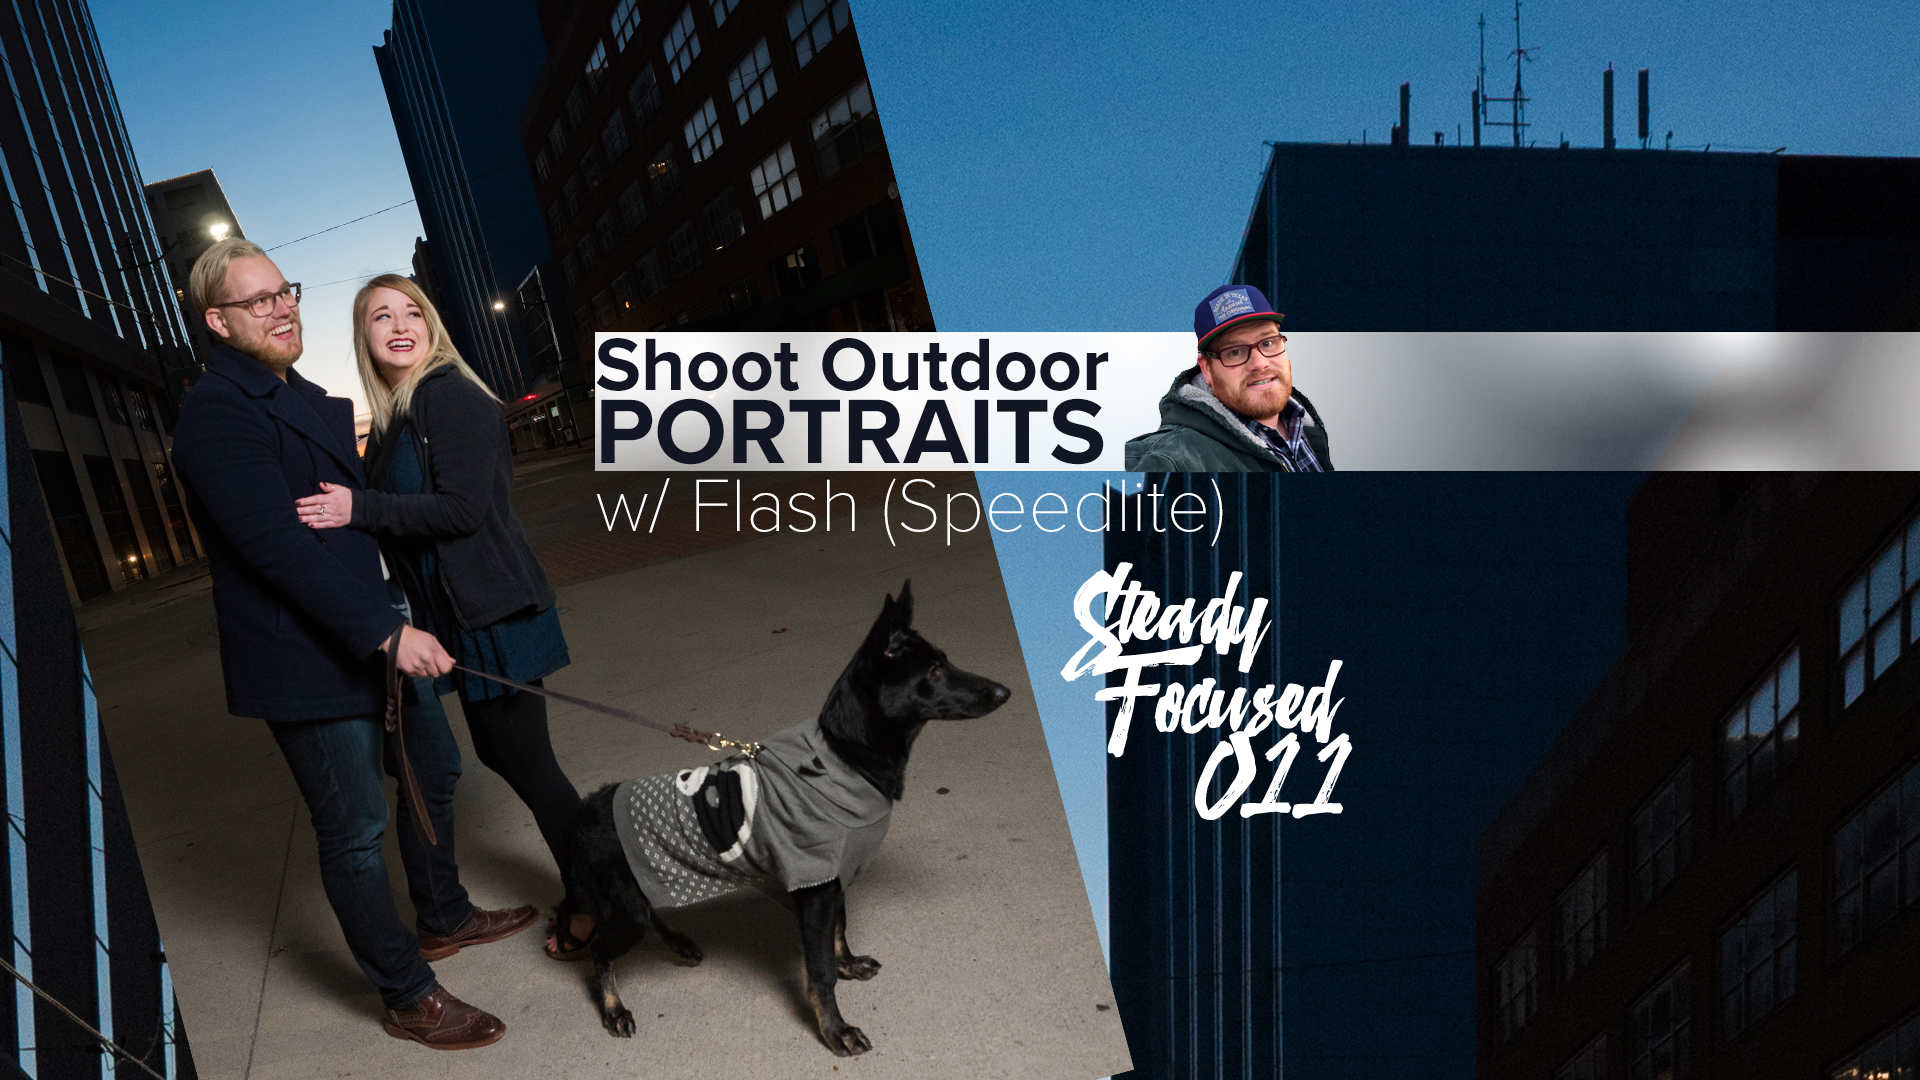 Shoot dynamic outdoor portraits during the day by using a flash (speedlite) - Steady Focused EP 011